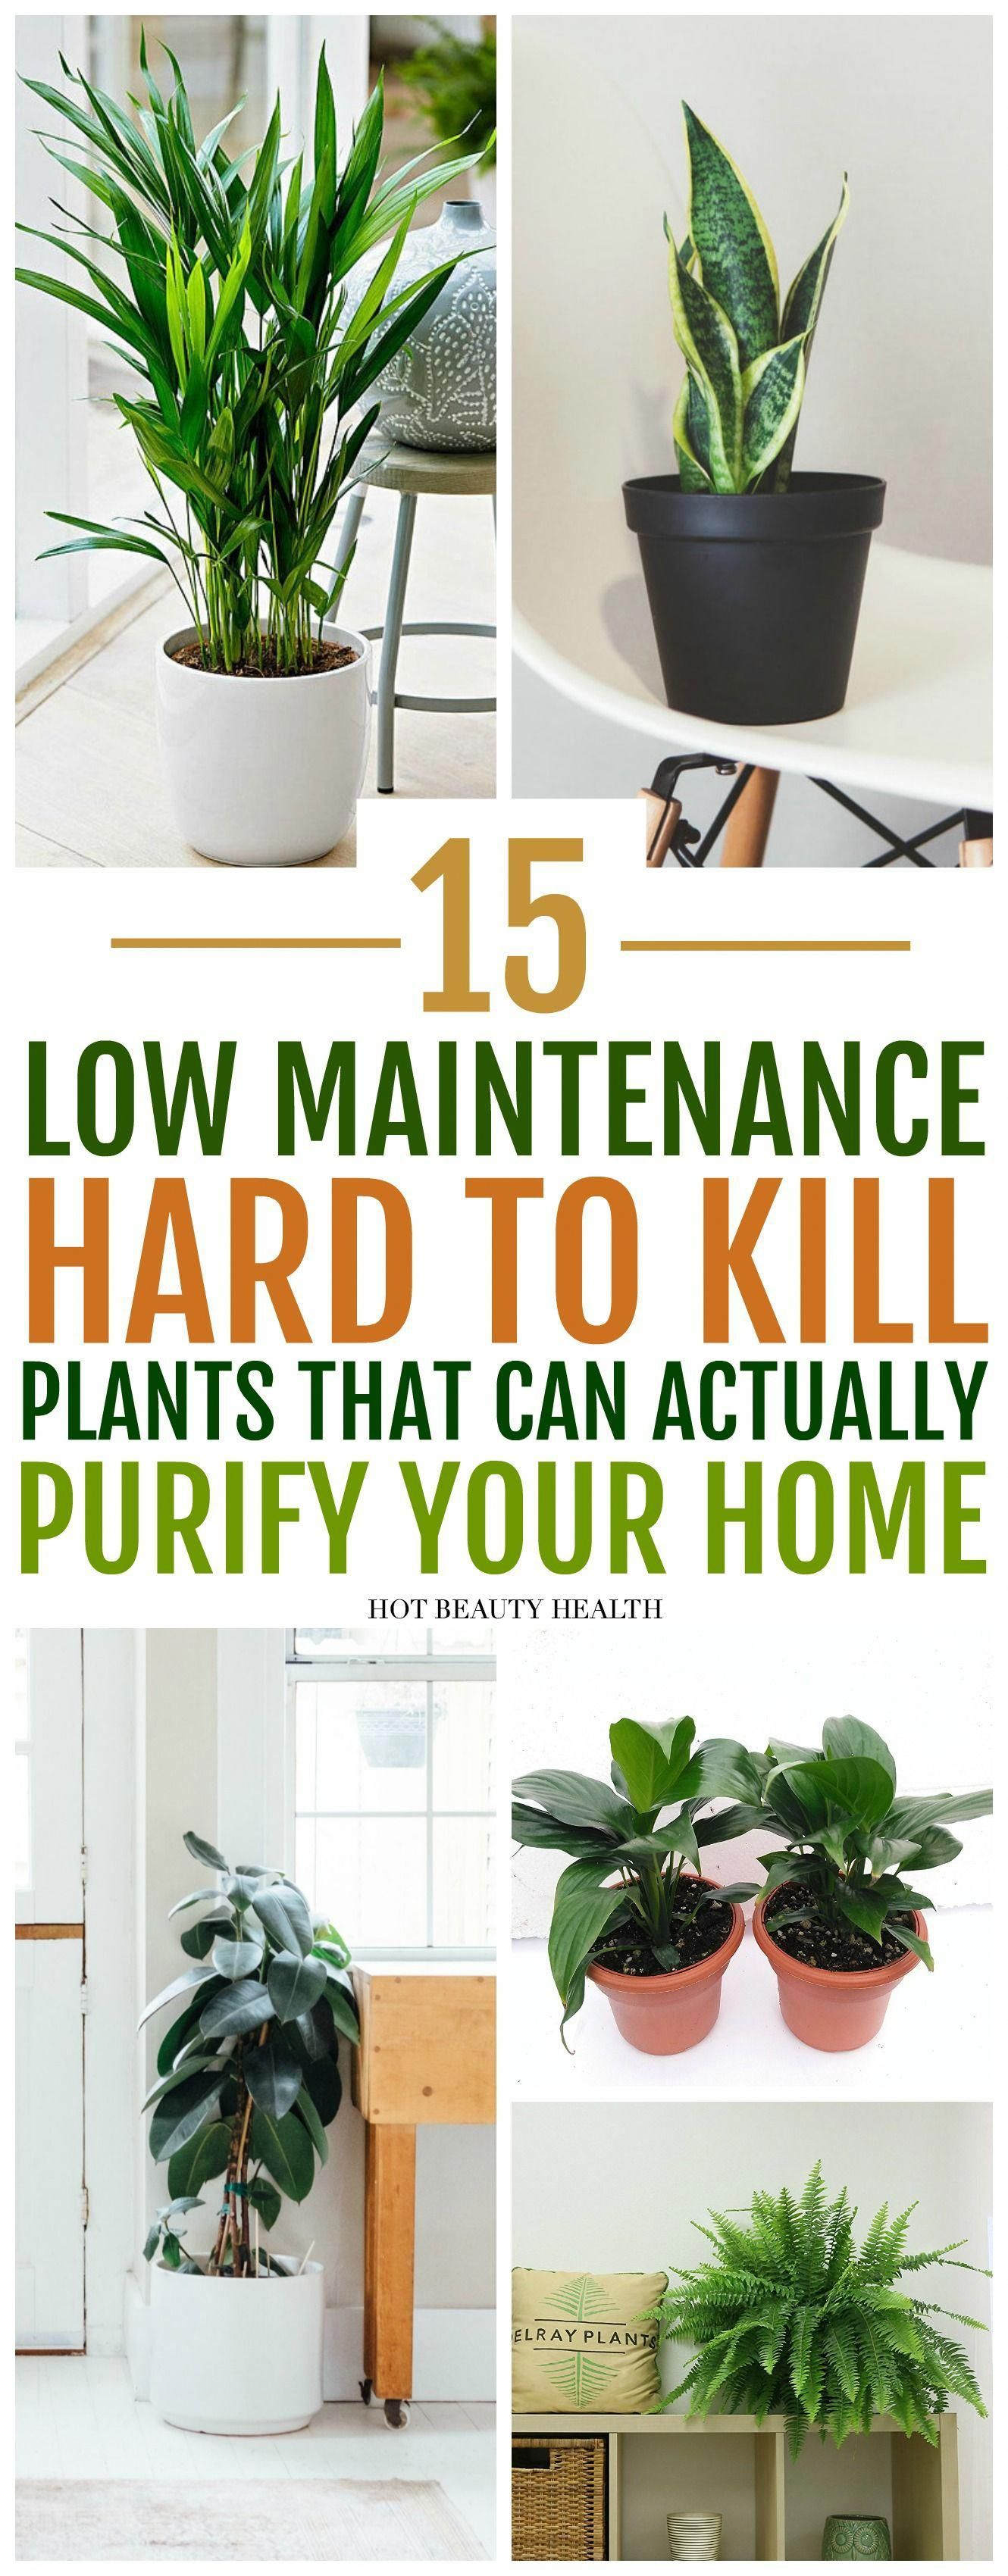 Click Here To See The Best Air Purifying Plants That Are Super Low Maintenance And Hard To Kill Hot Beauty Health Ho Low Maintenance Indoor Plants Best Air Purifying Plants Inside